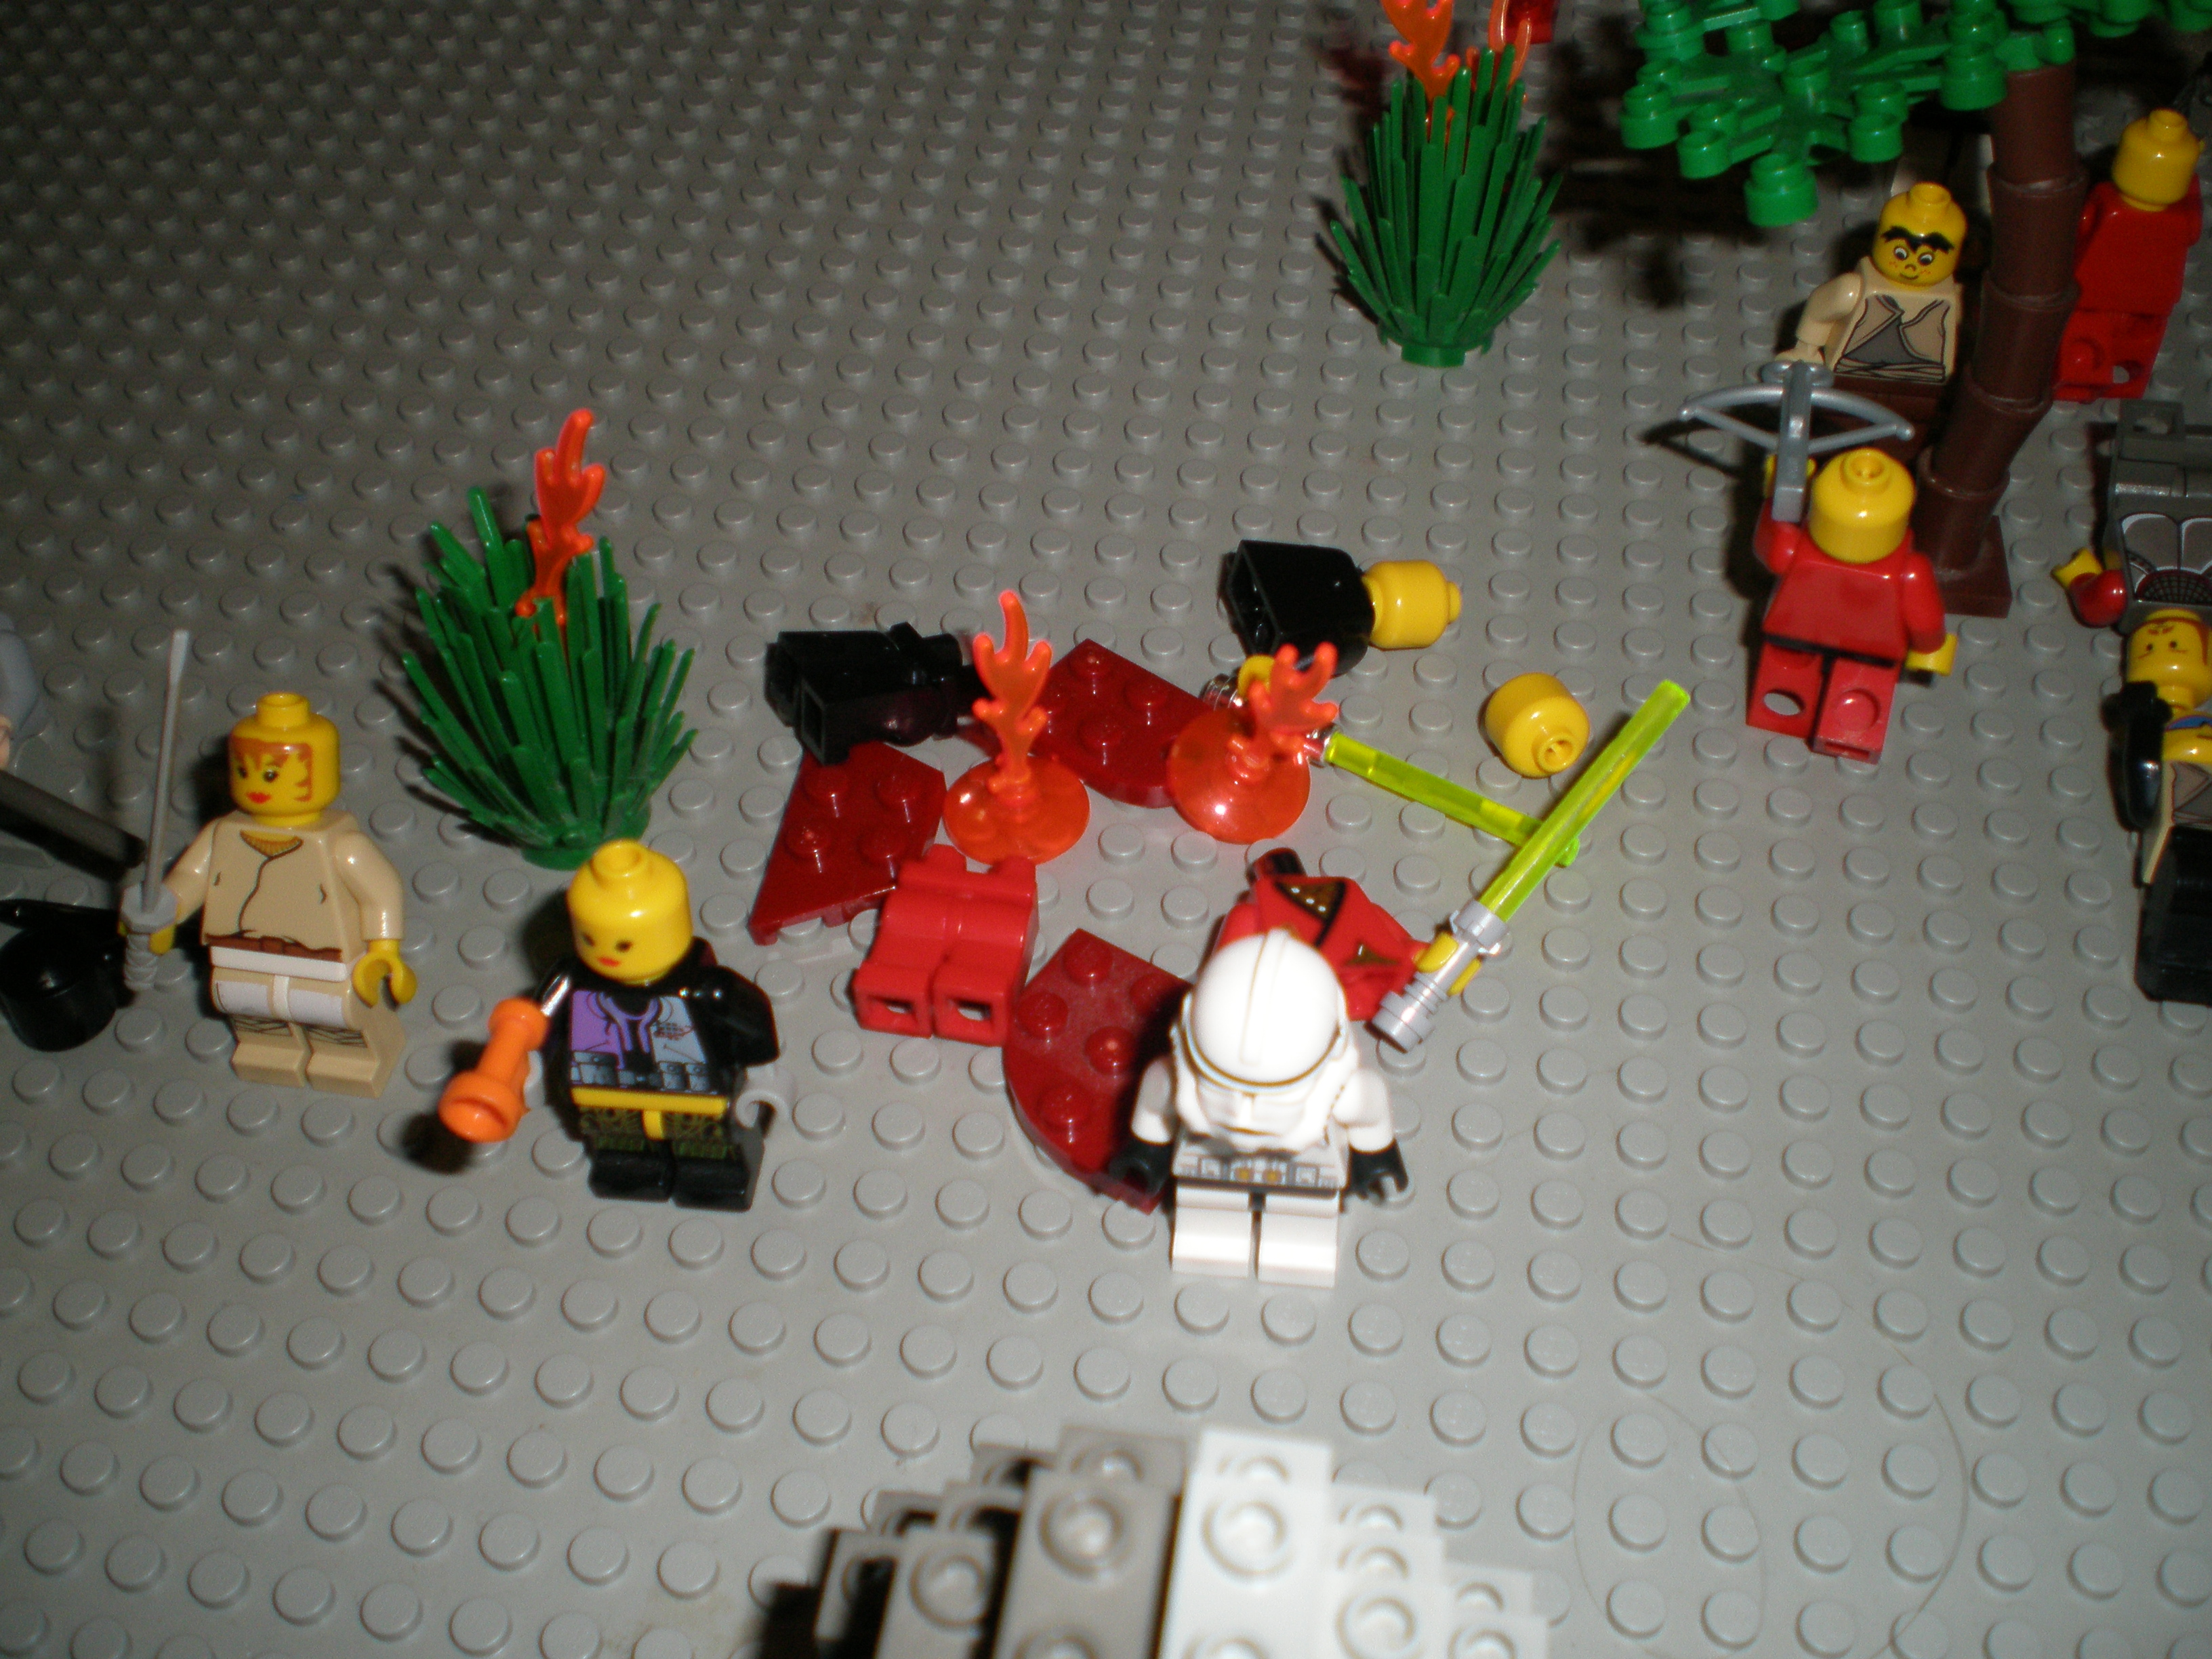 armagendon_lego_battle_008.jpg